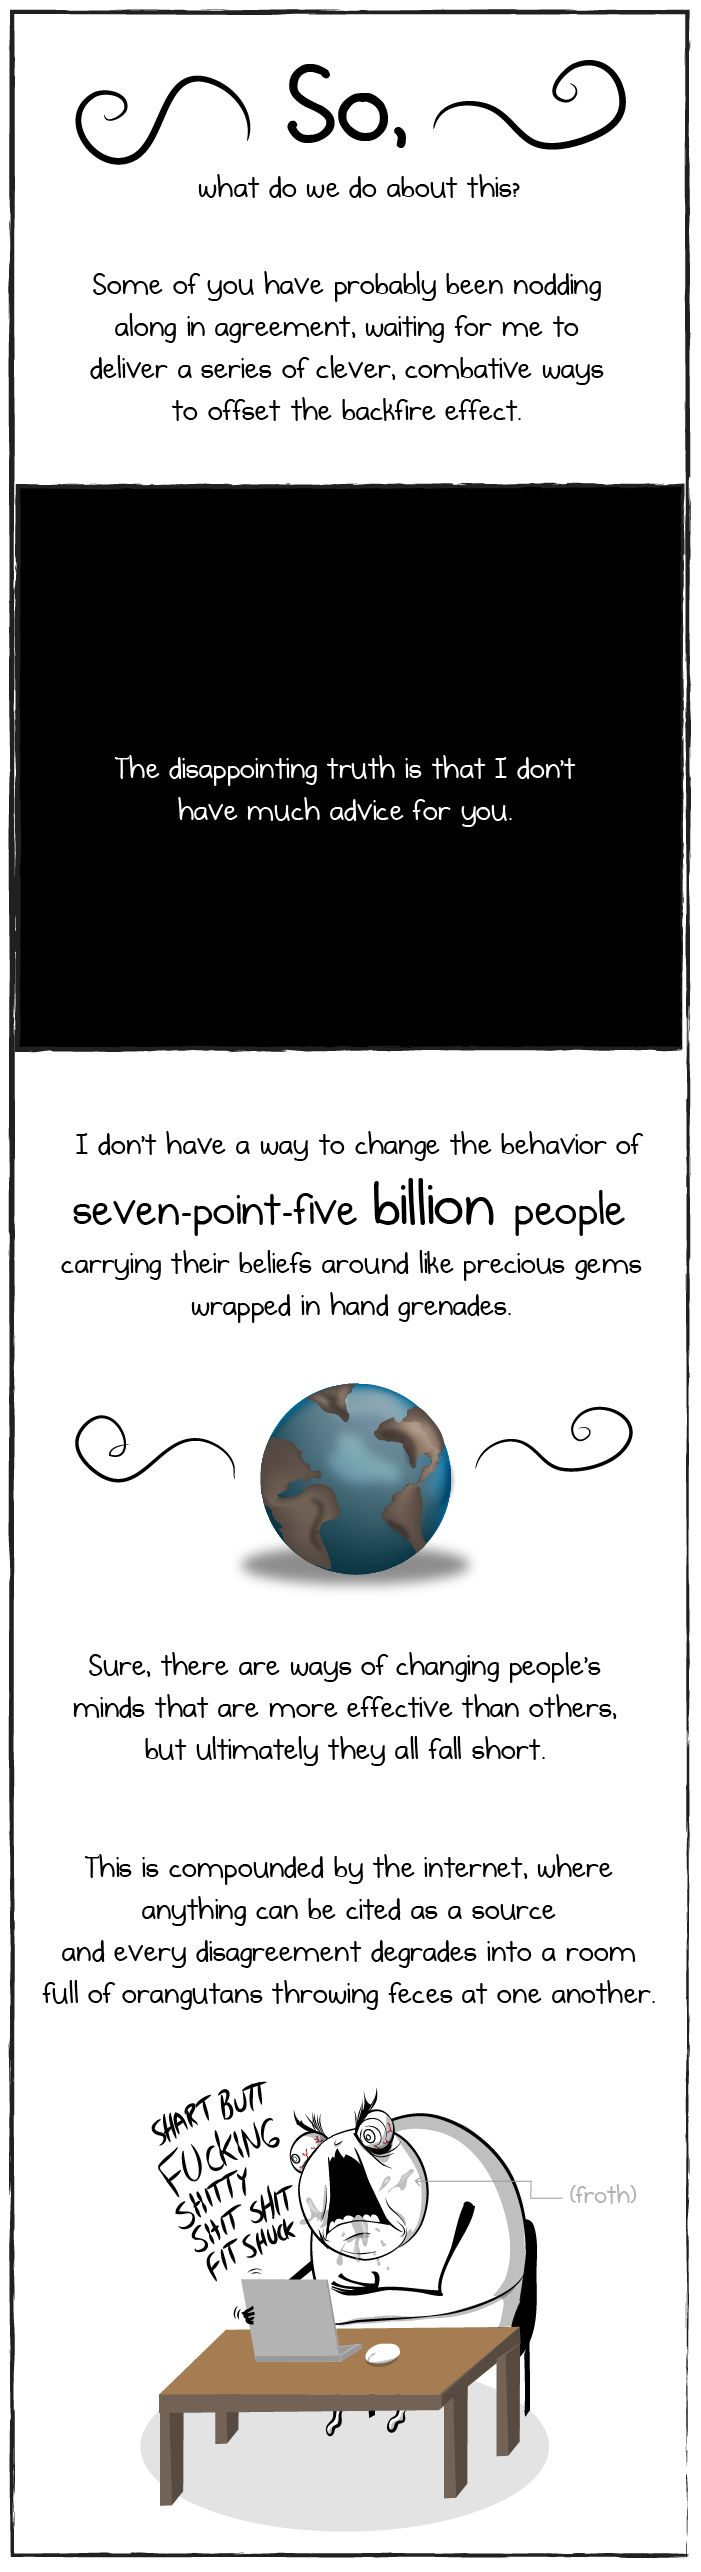 You're not going to believe what I'm about to tell you - The Oatmeal